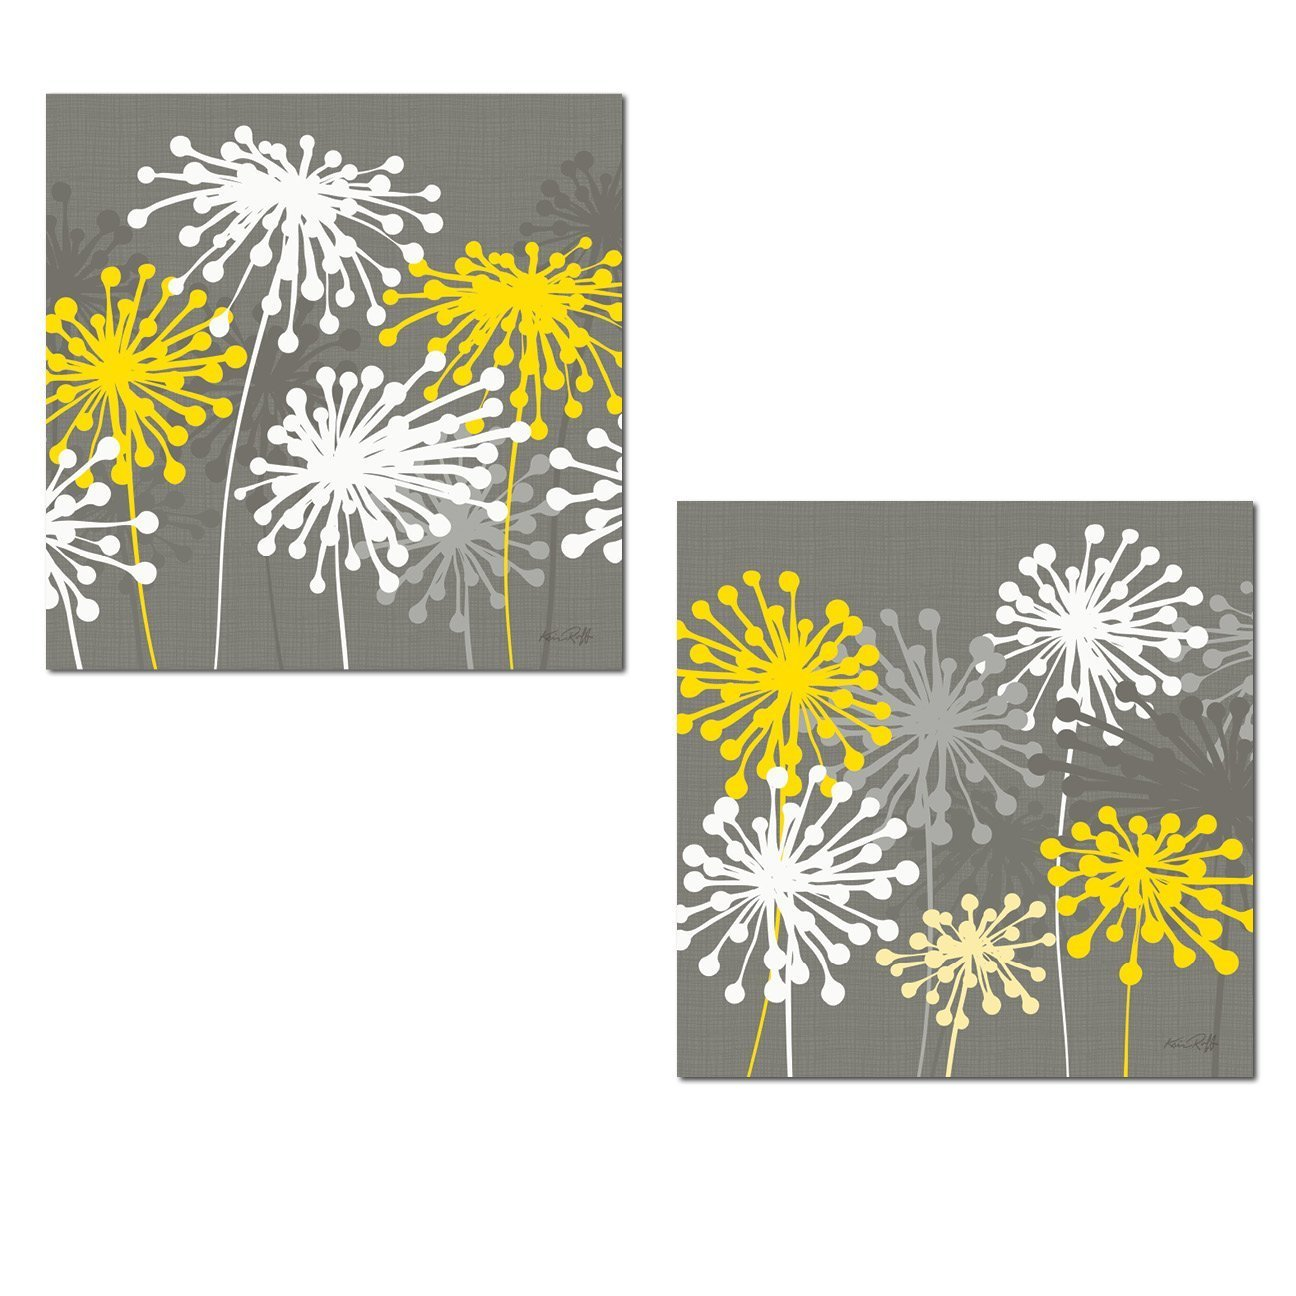 2 Gray, White and Yellow Dandelion Prints; Floral Decor; Two 12x12in Poster Prints